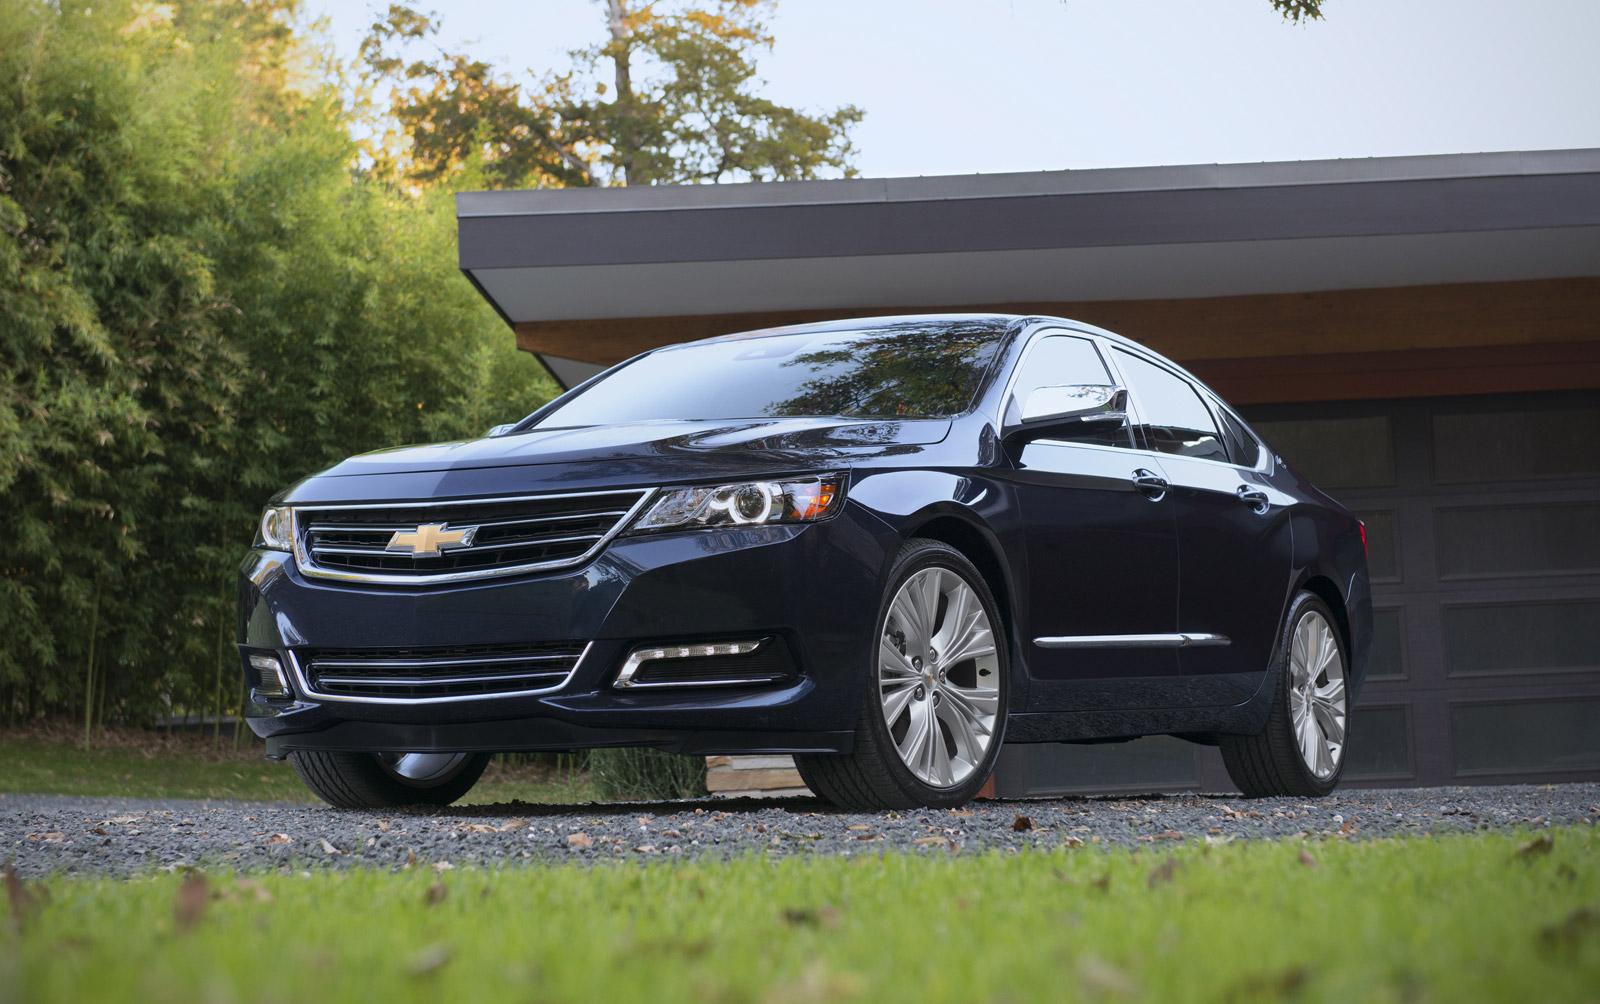 2015 chevrolet impala chevy review ratings specs. Black Bedroom Furniture Sets. Home Design Ideas